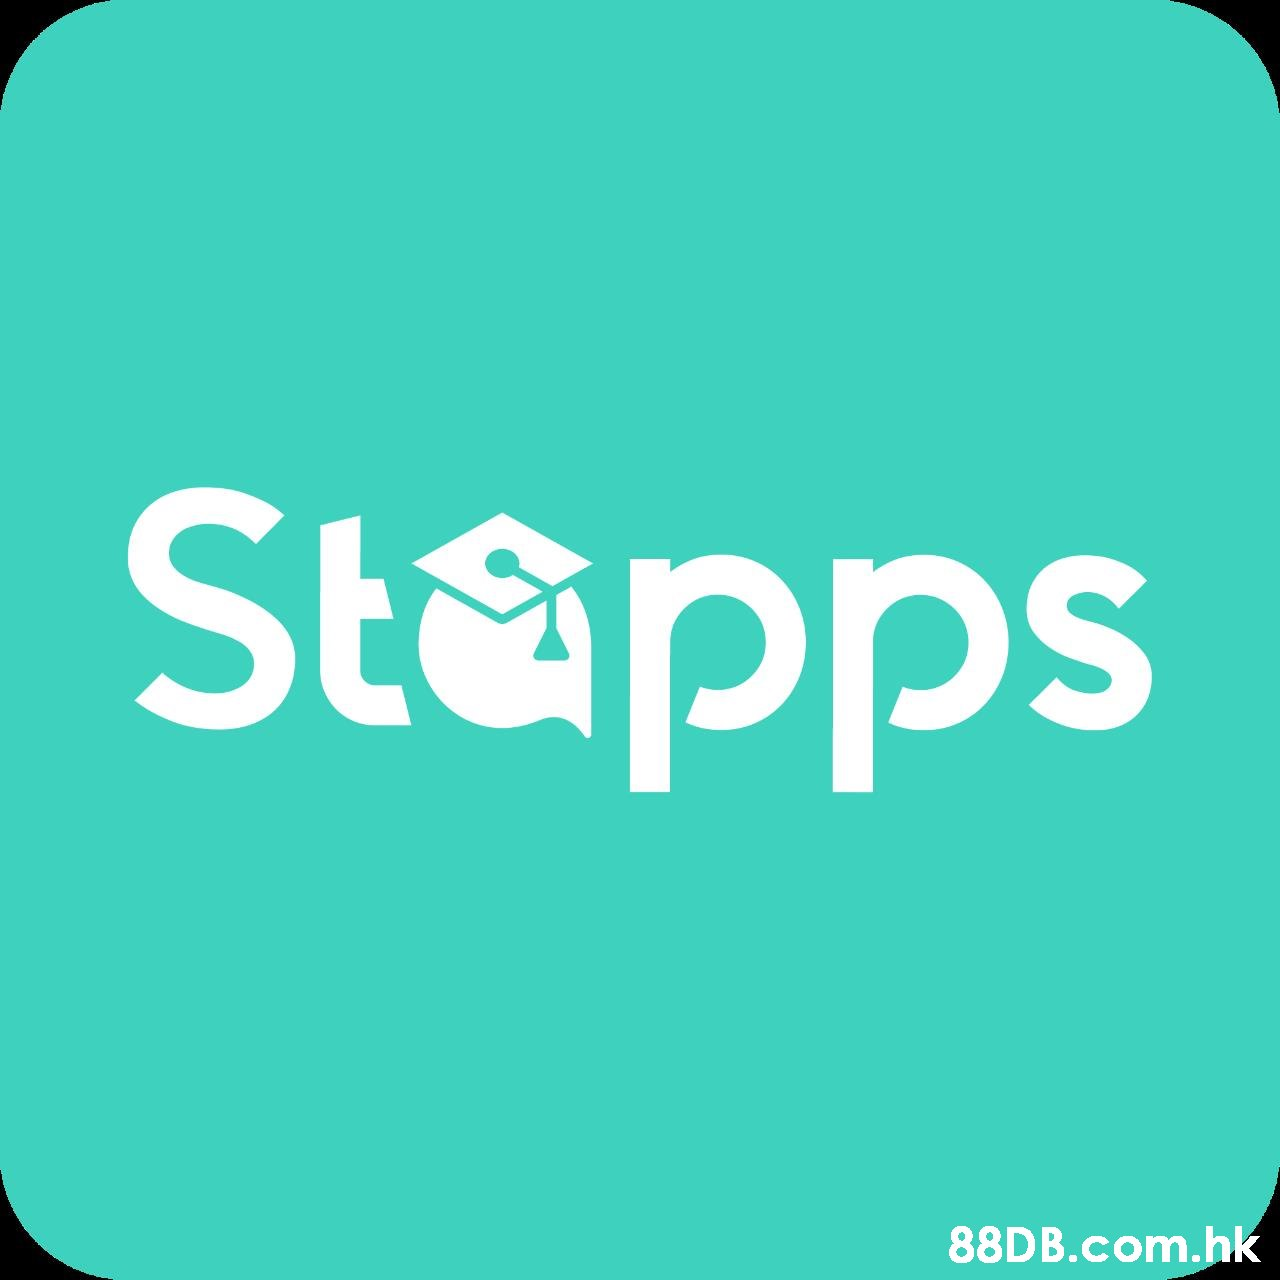 Stapps .hk  Green,Text,Font,Turquoise,Teal